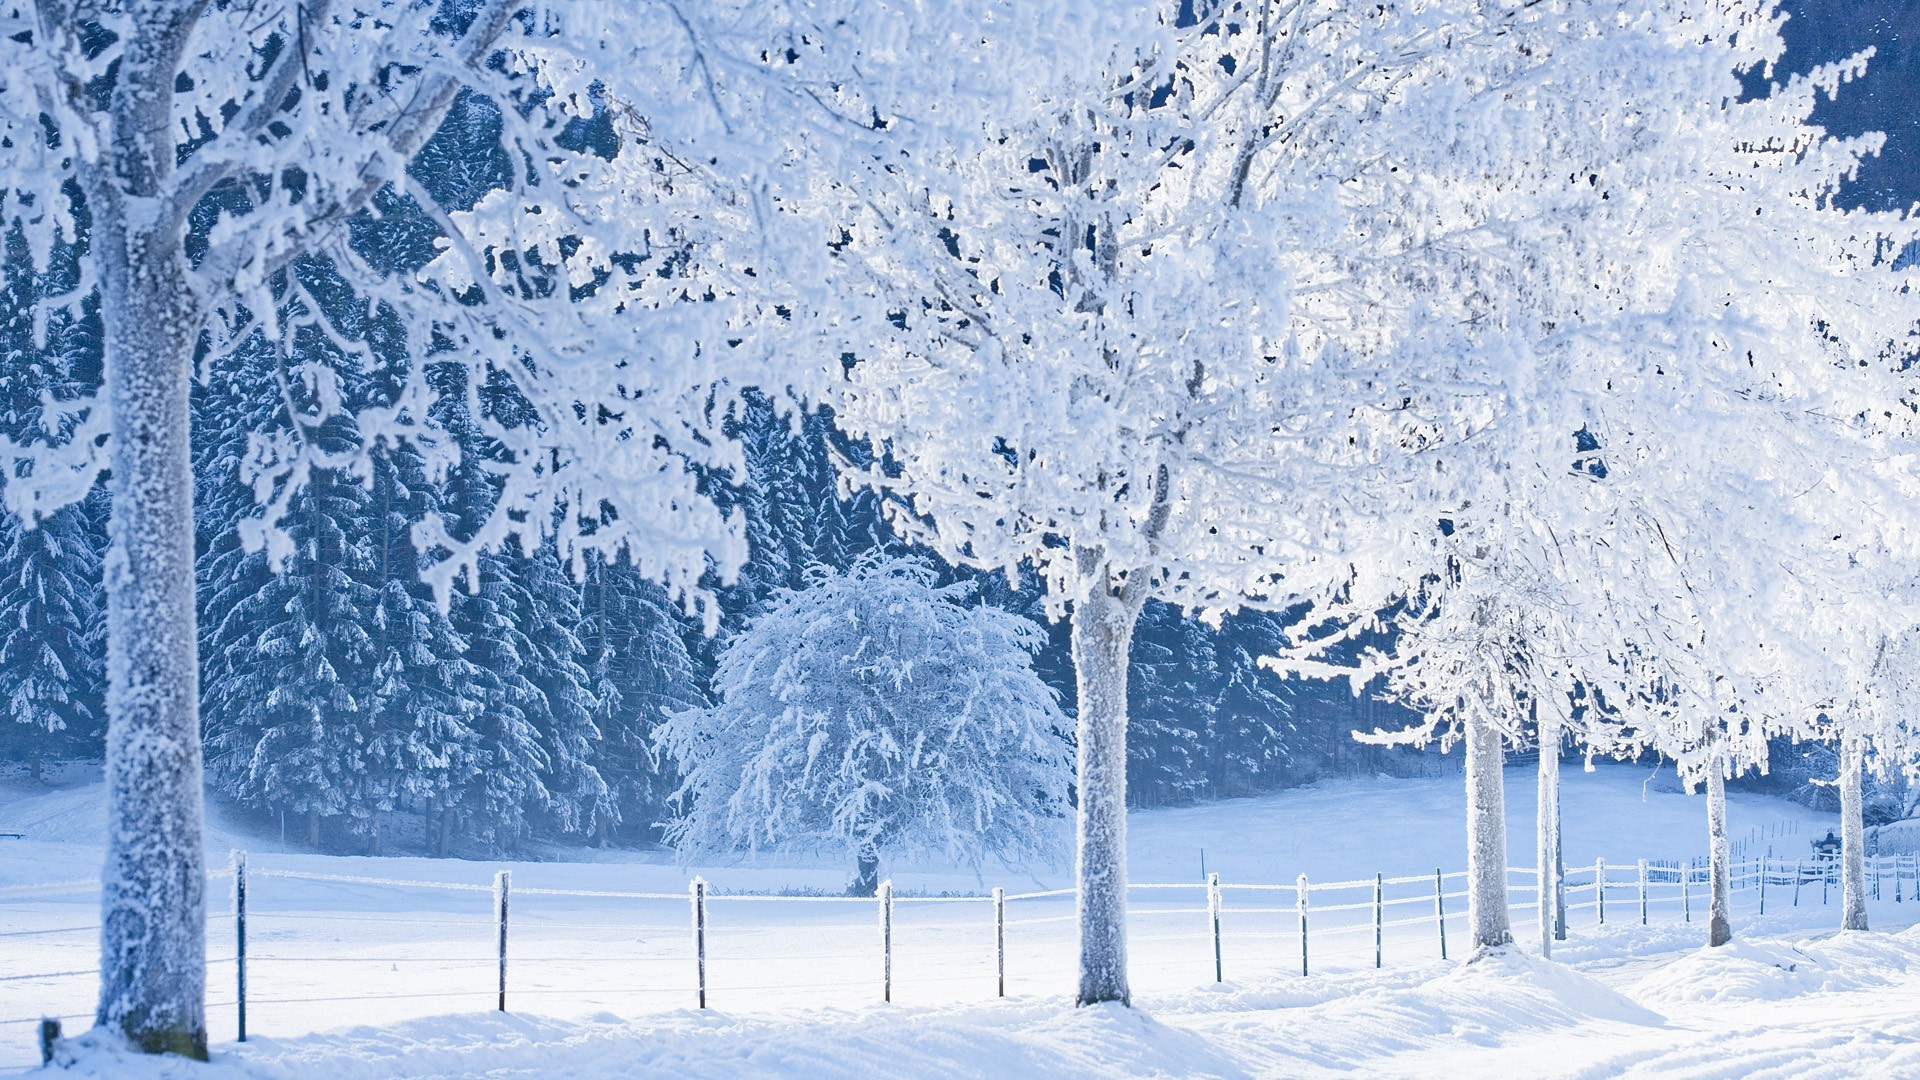 Res: 1920x1080, Real Snowy Backgrounds wallpaper Real Snowy Backgrounds hd wallpaper